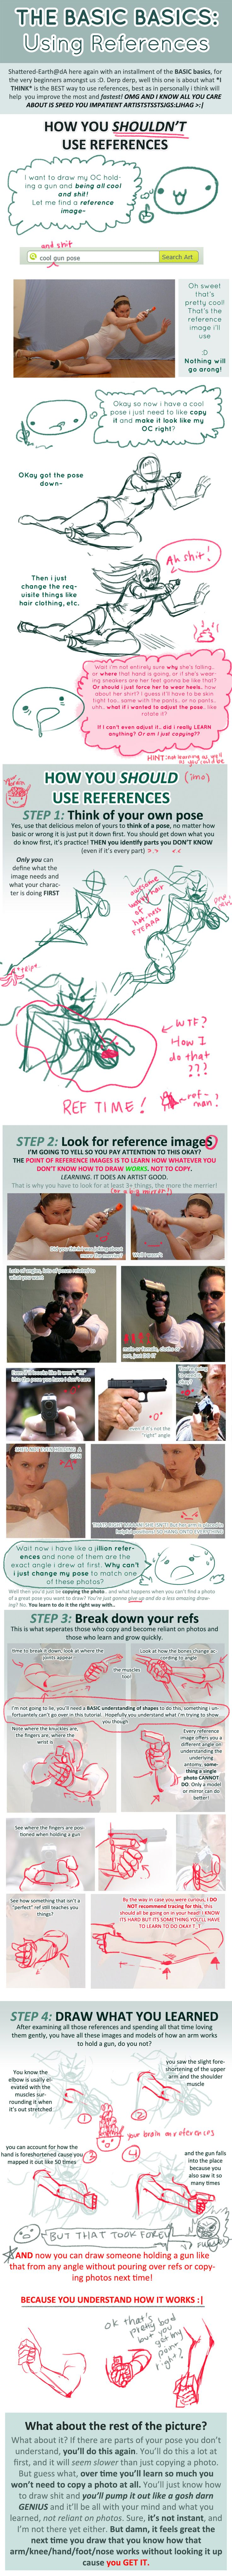 best images about references bang bang drawing how to use references in artwork